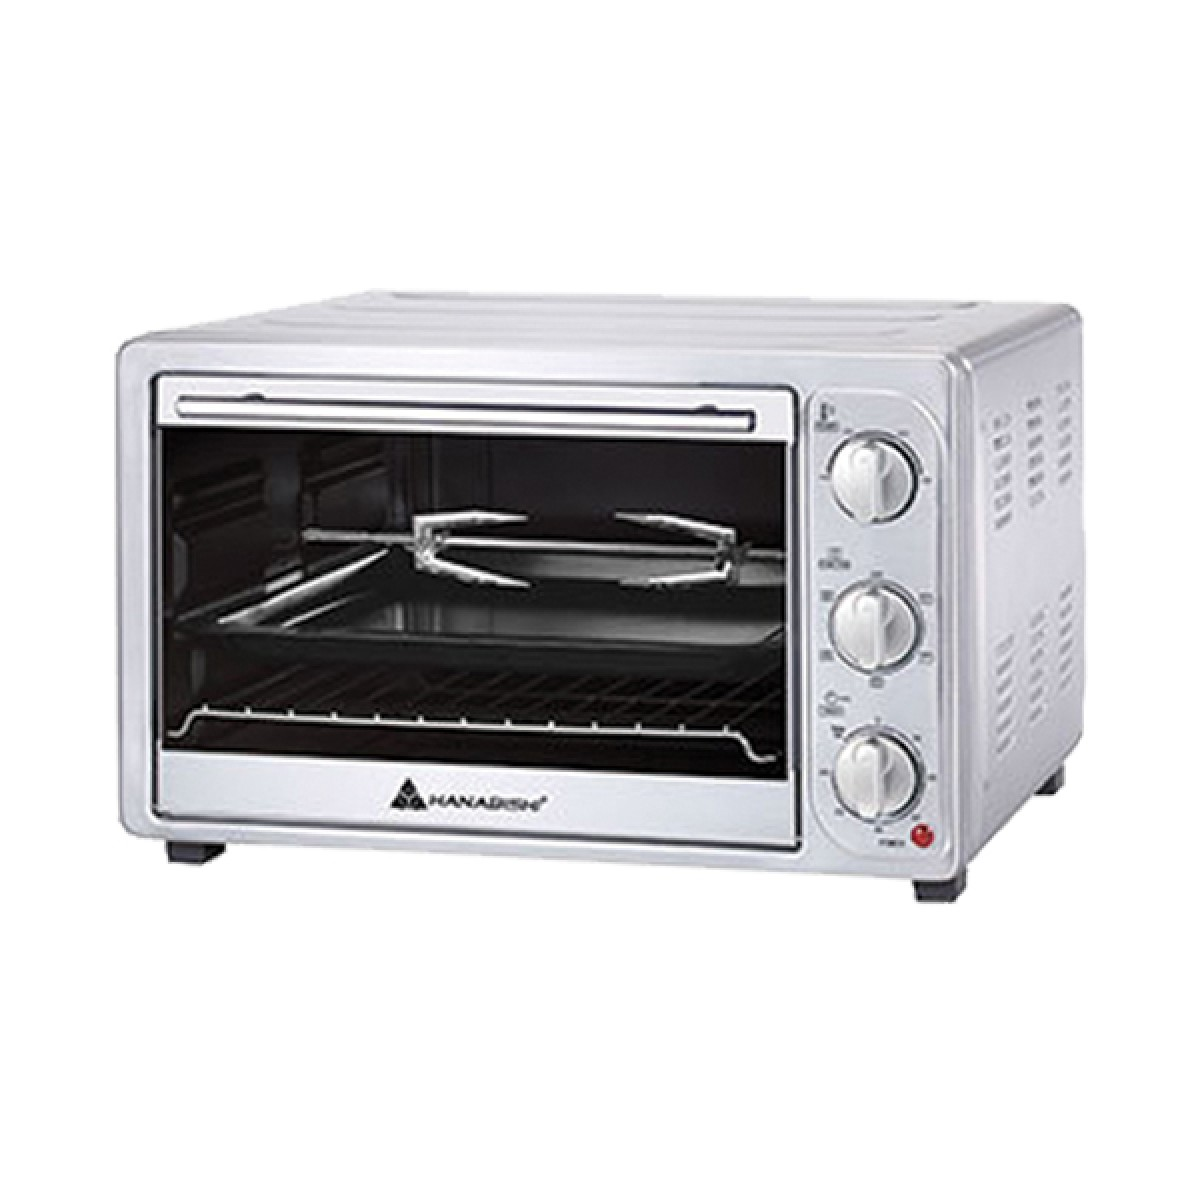 Countertop Oven Philippines Hanabishi Heo 30pss Oven Robinsons Appliances